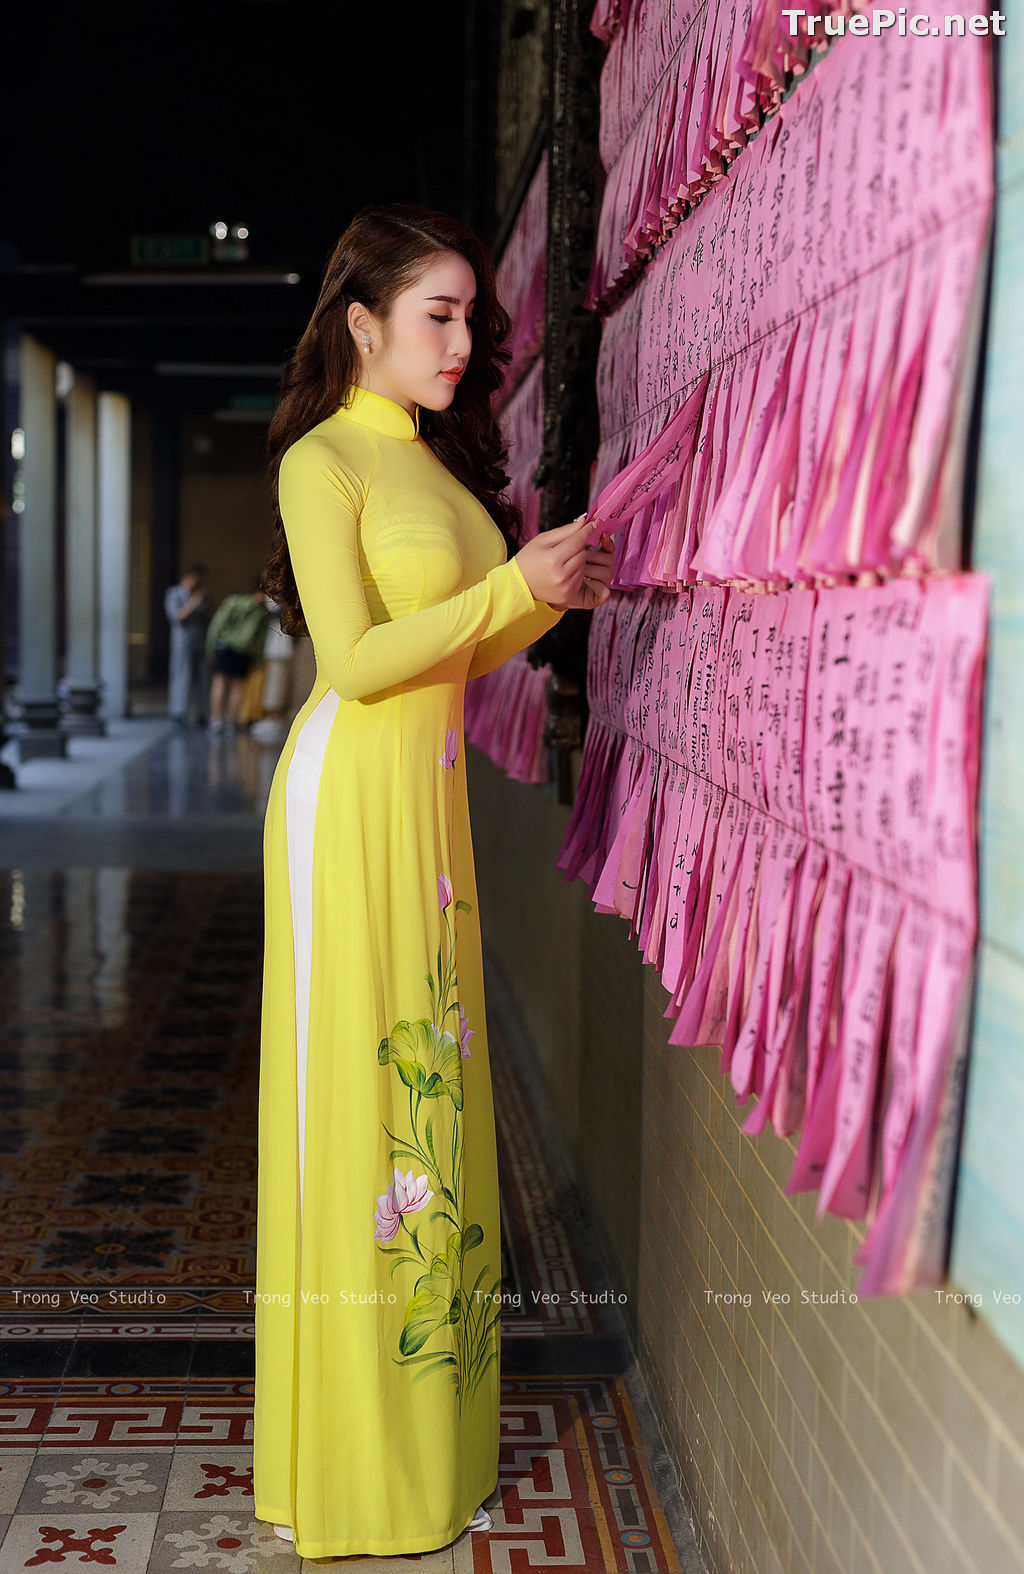 Image The Beauty of Vietnamese Girls with Traditional Dress (Ao Dai) #4 - TruePic.net - Picture-8